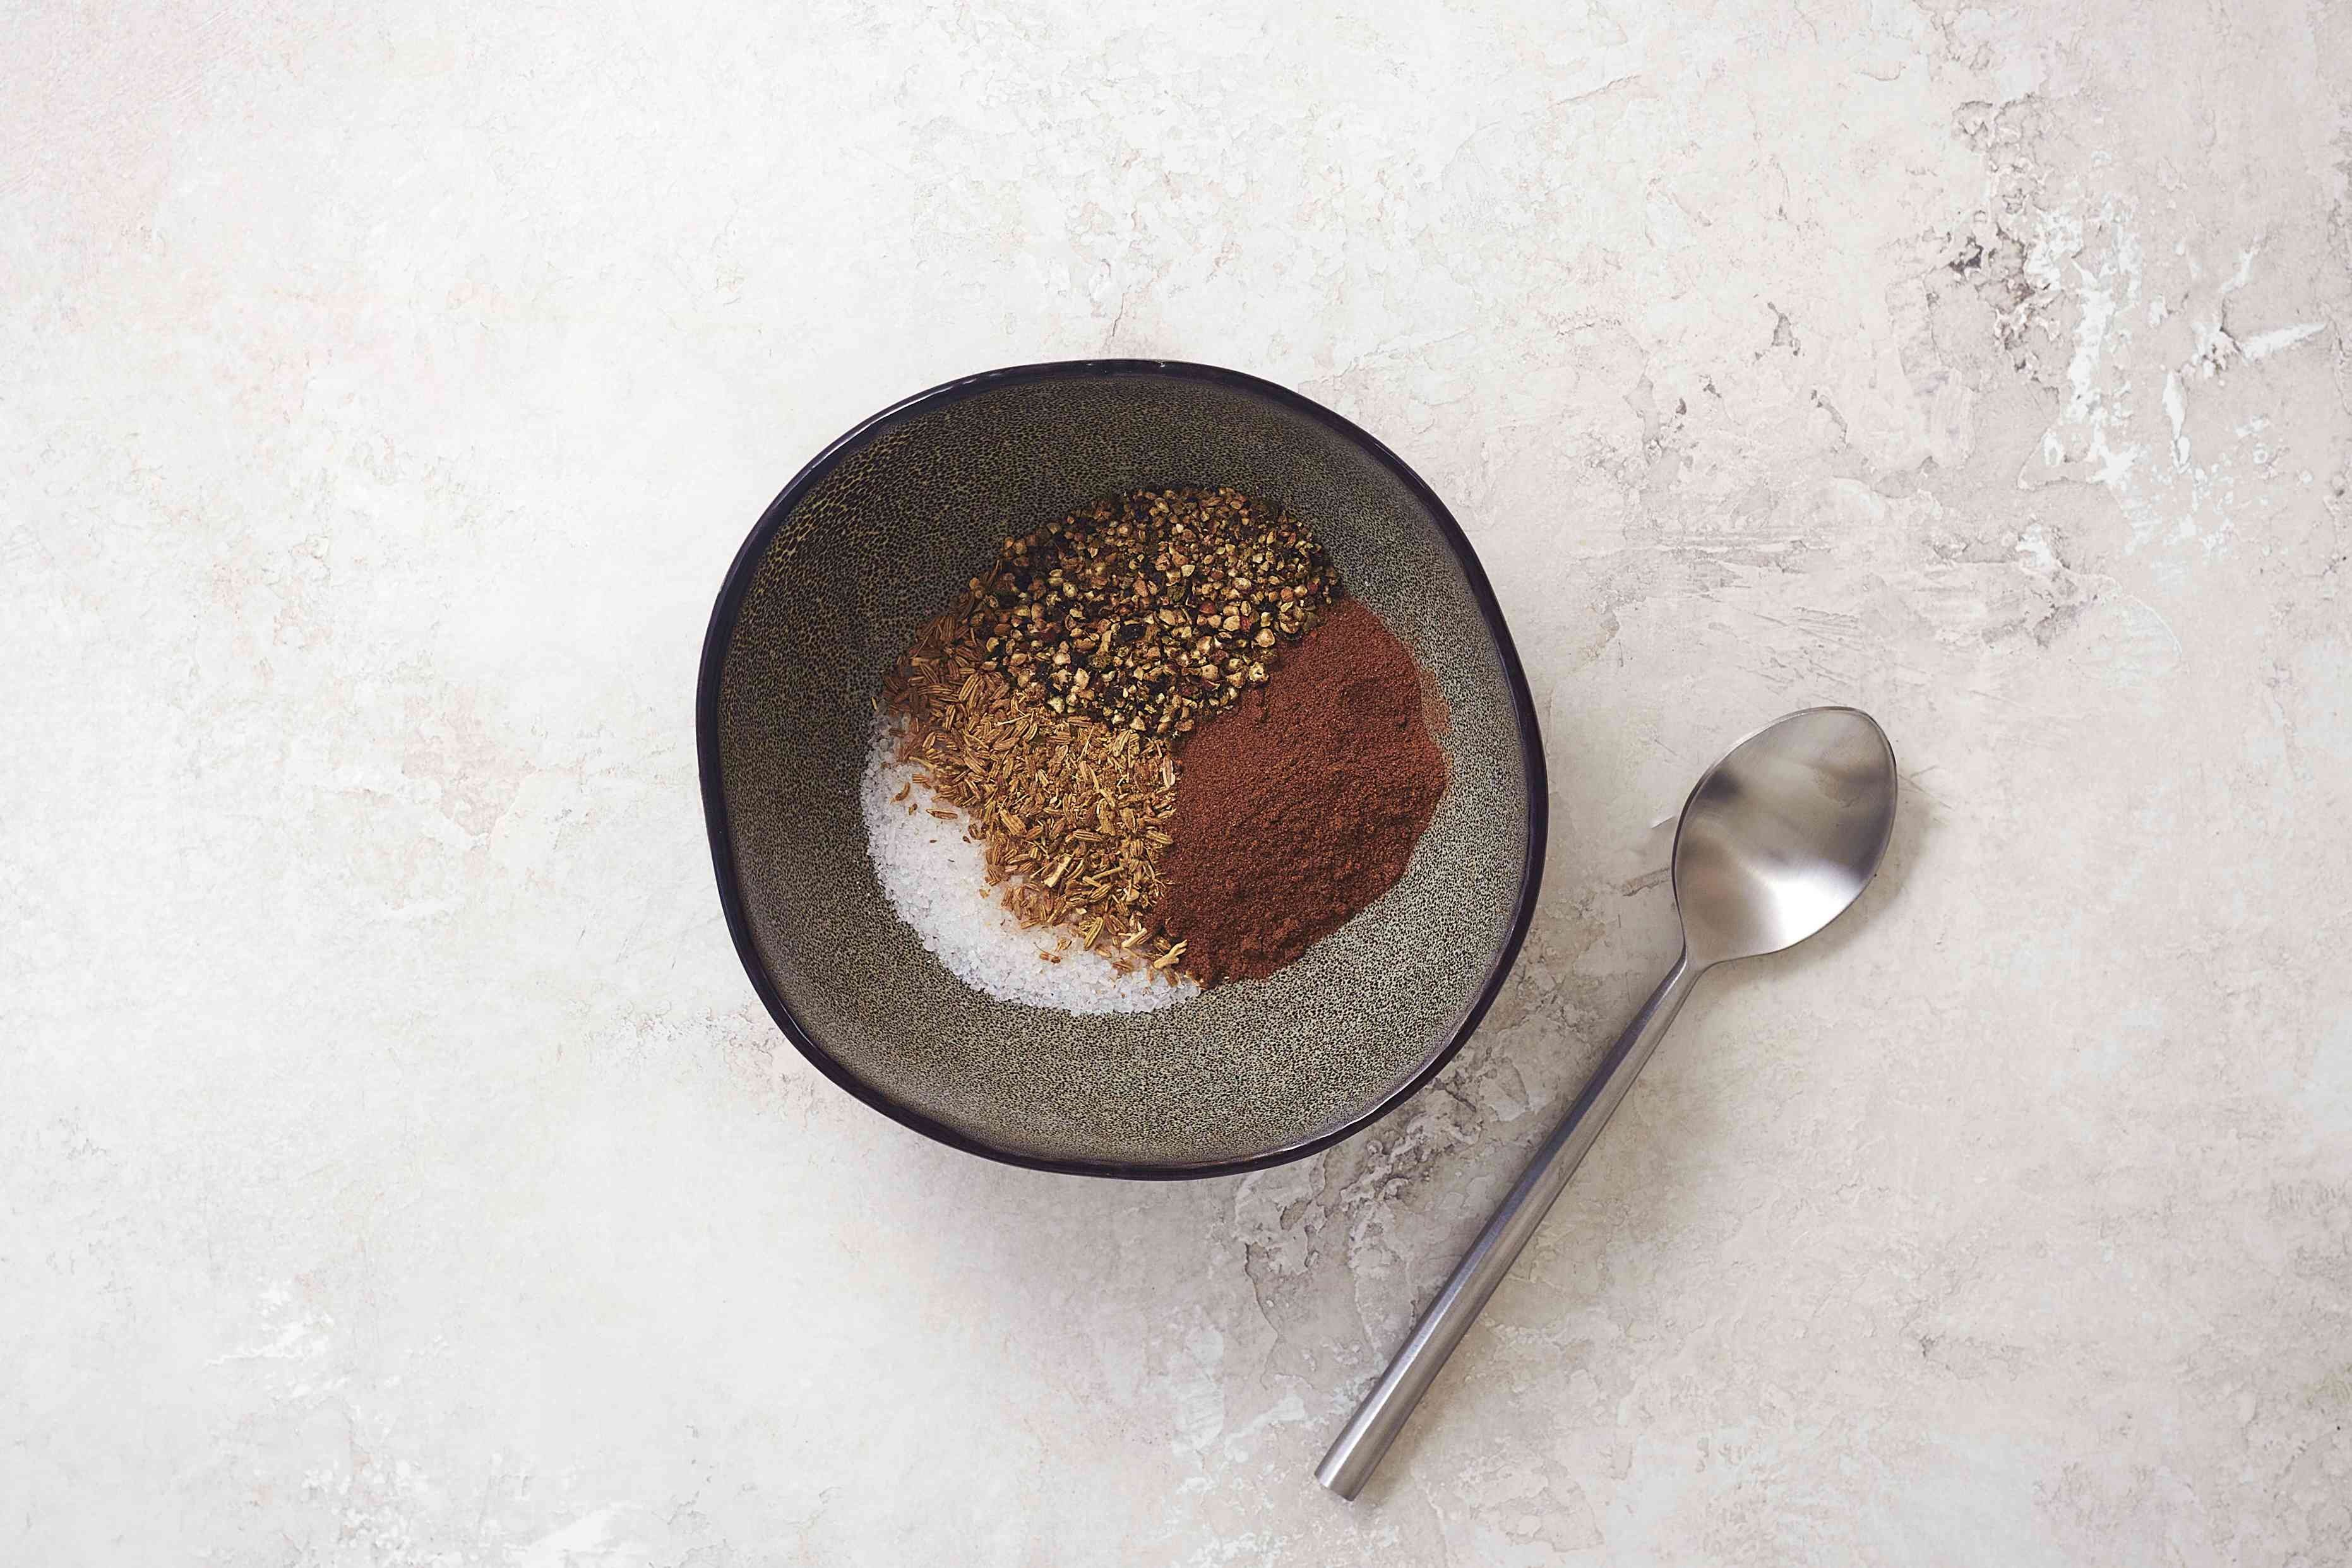 combine the salt, fennel seed, allspice, and black pepper in a bowl